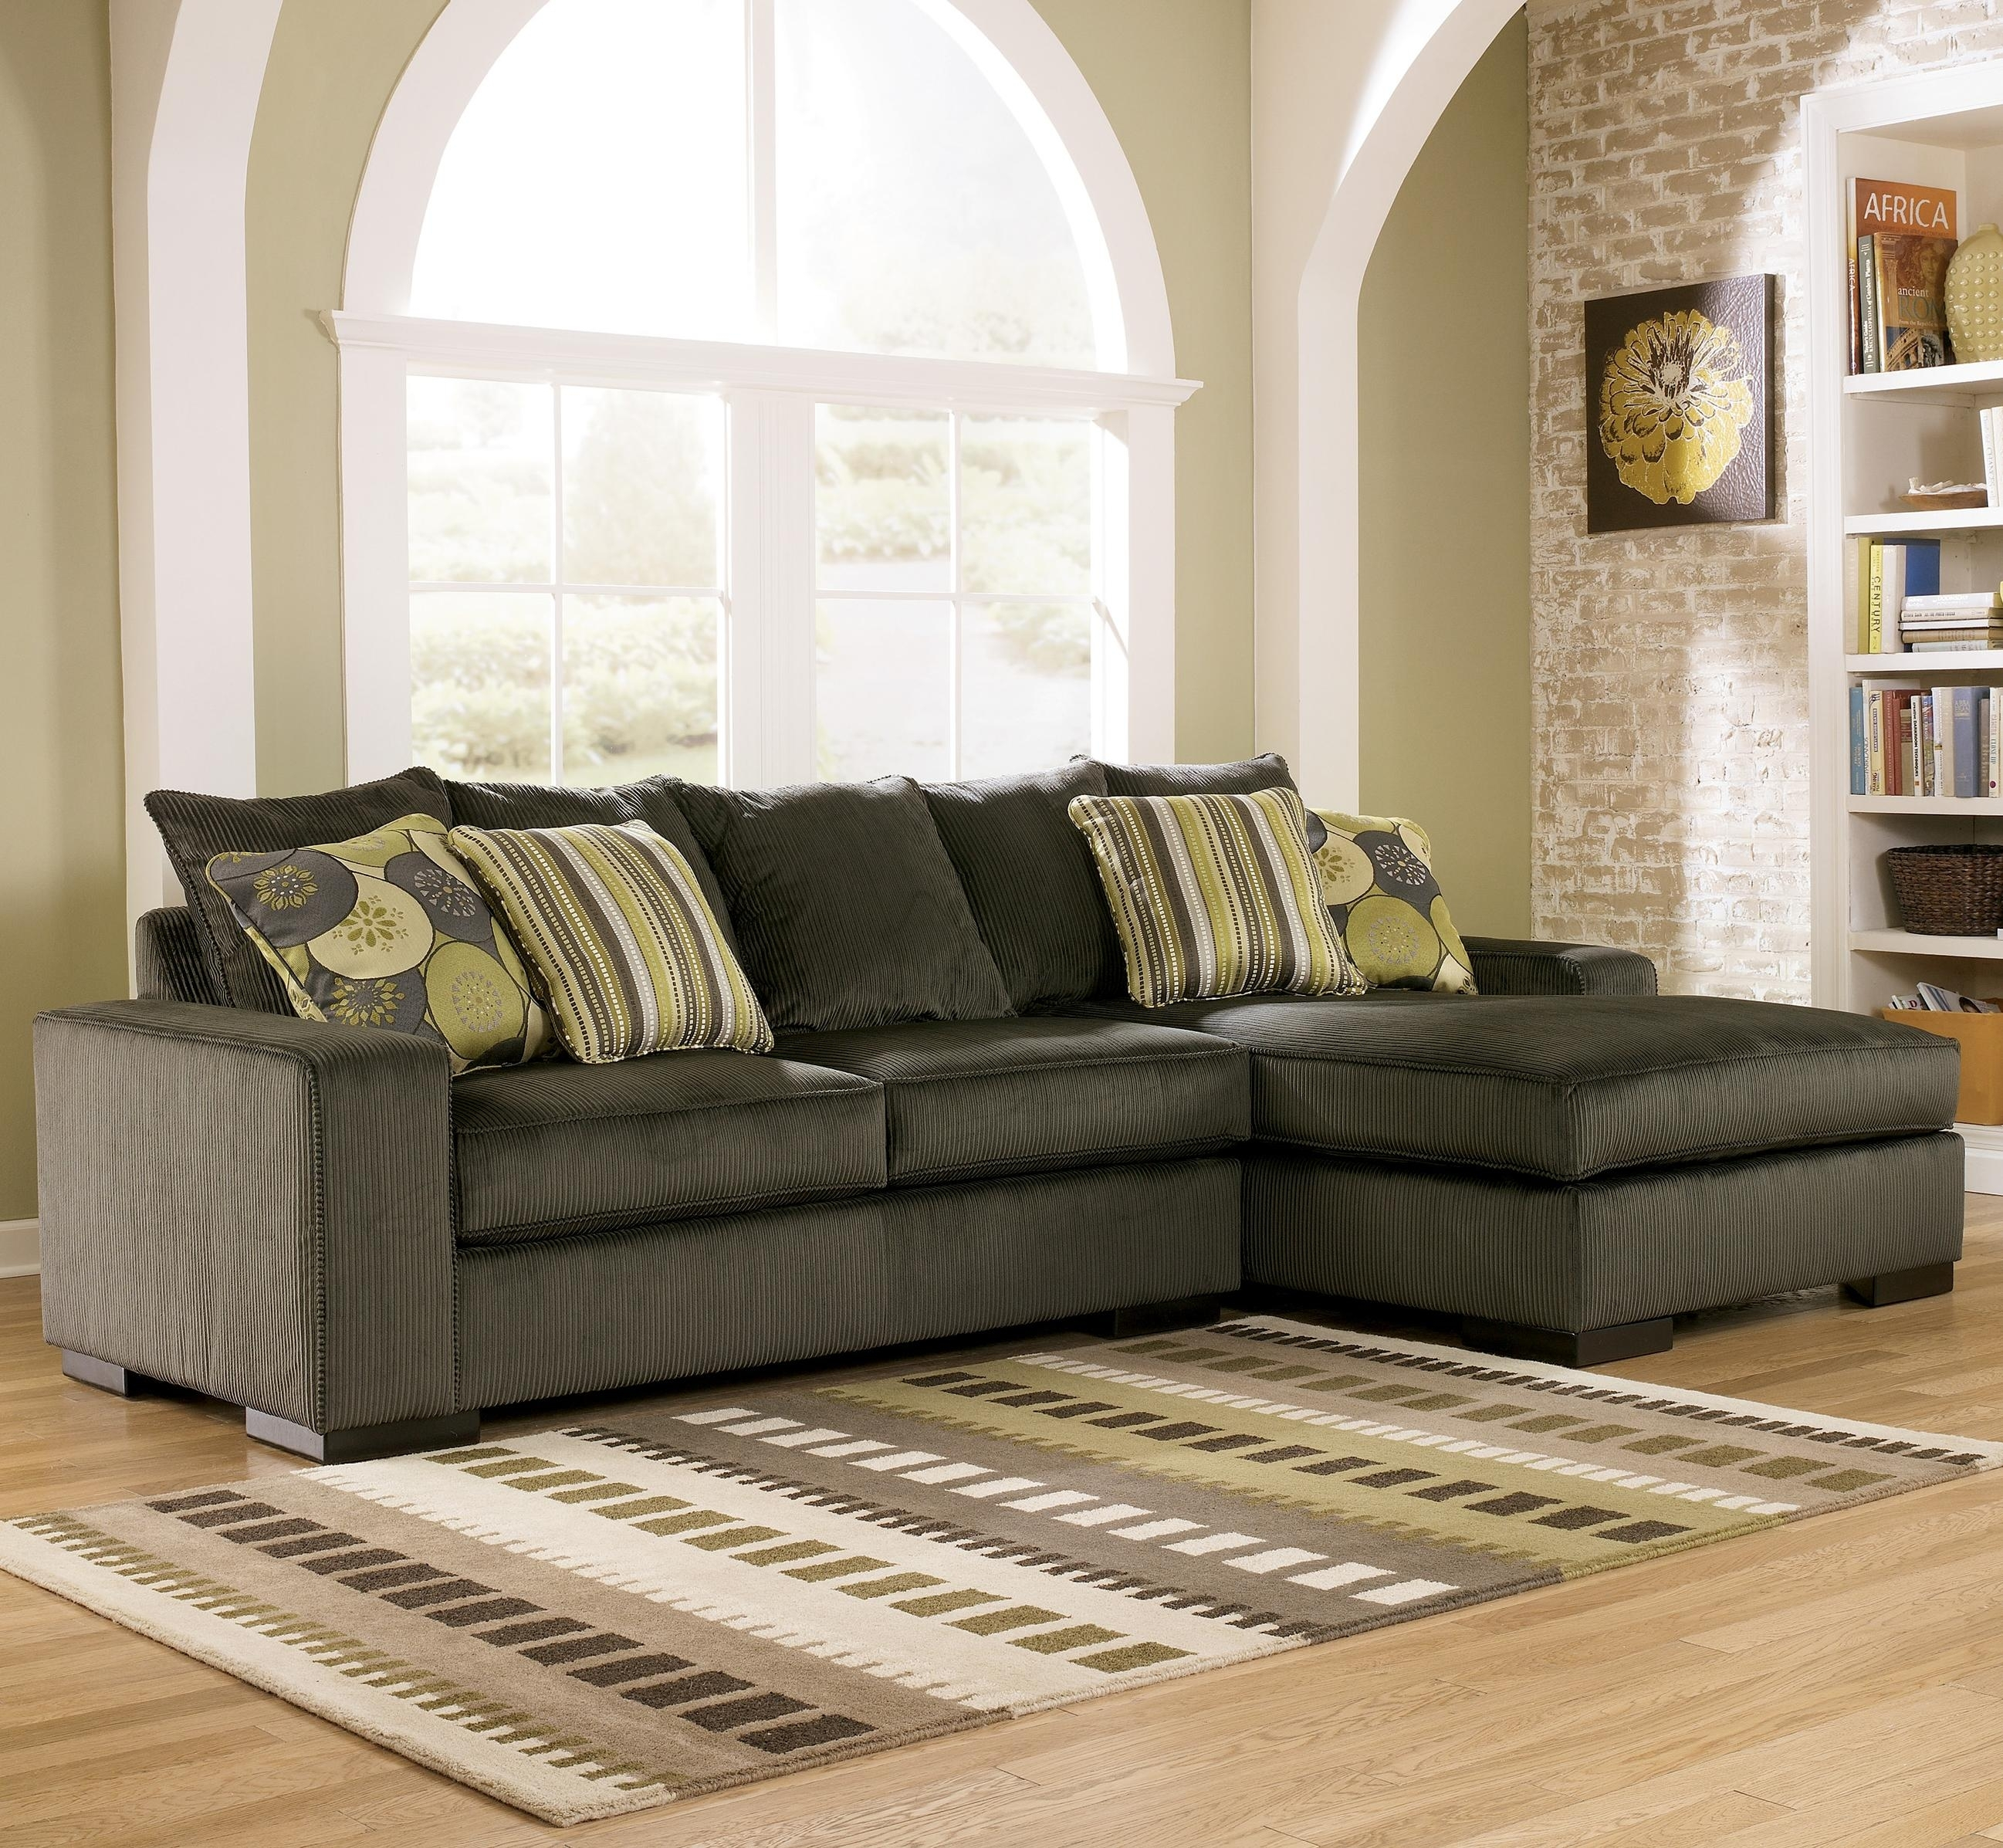 Sectional Sofas Atlanta TomfooleryBlogcom Inspirational Home